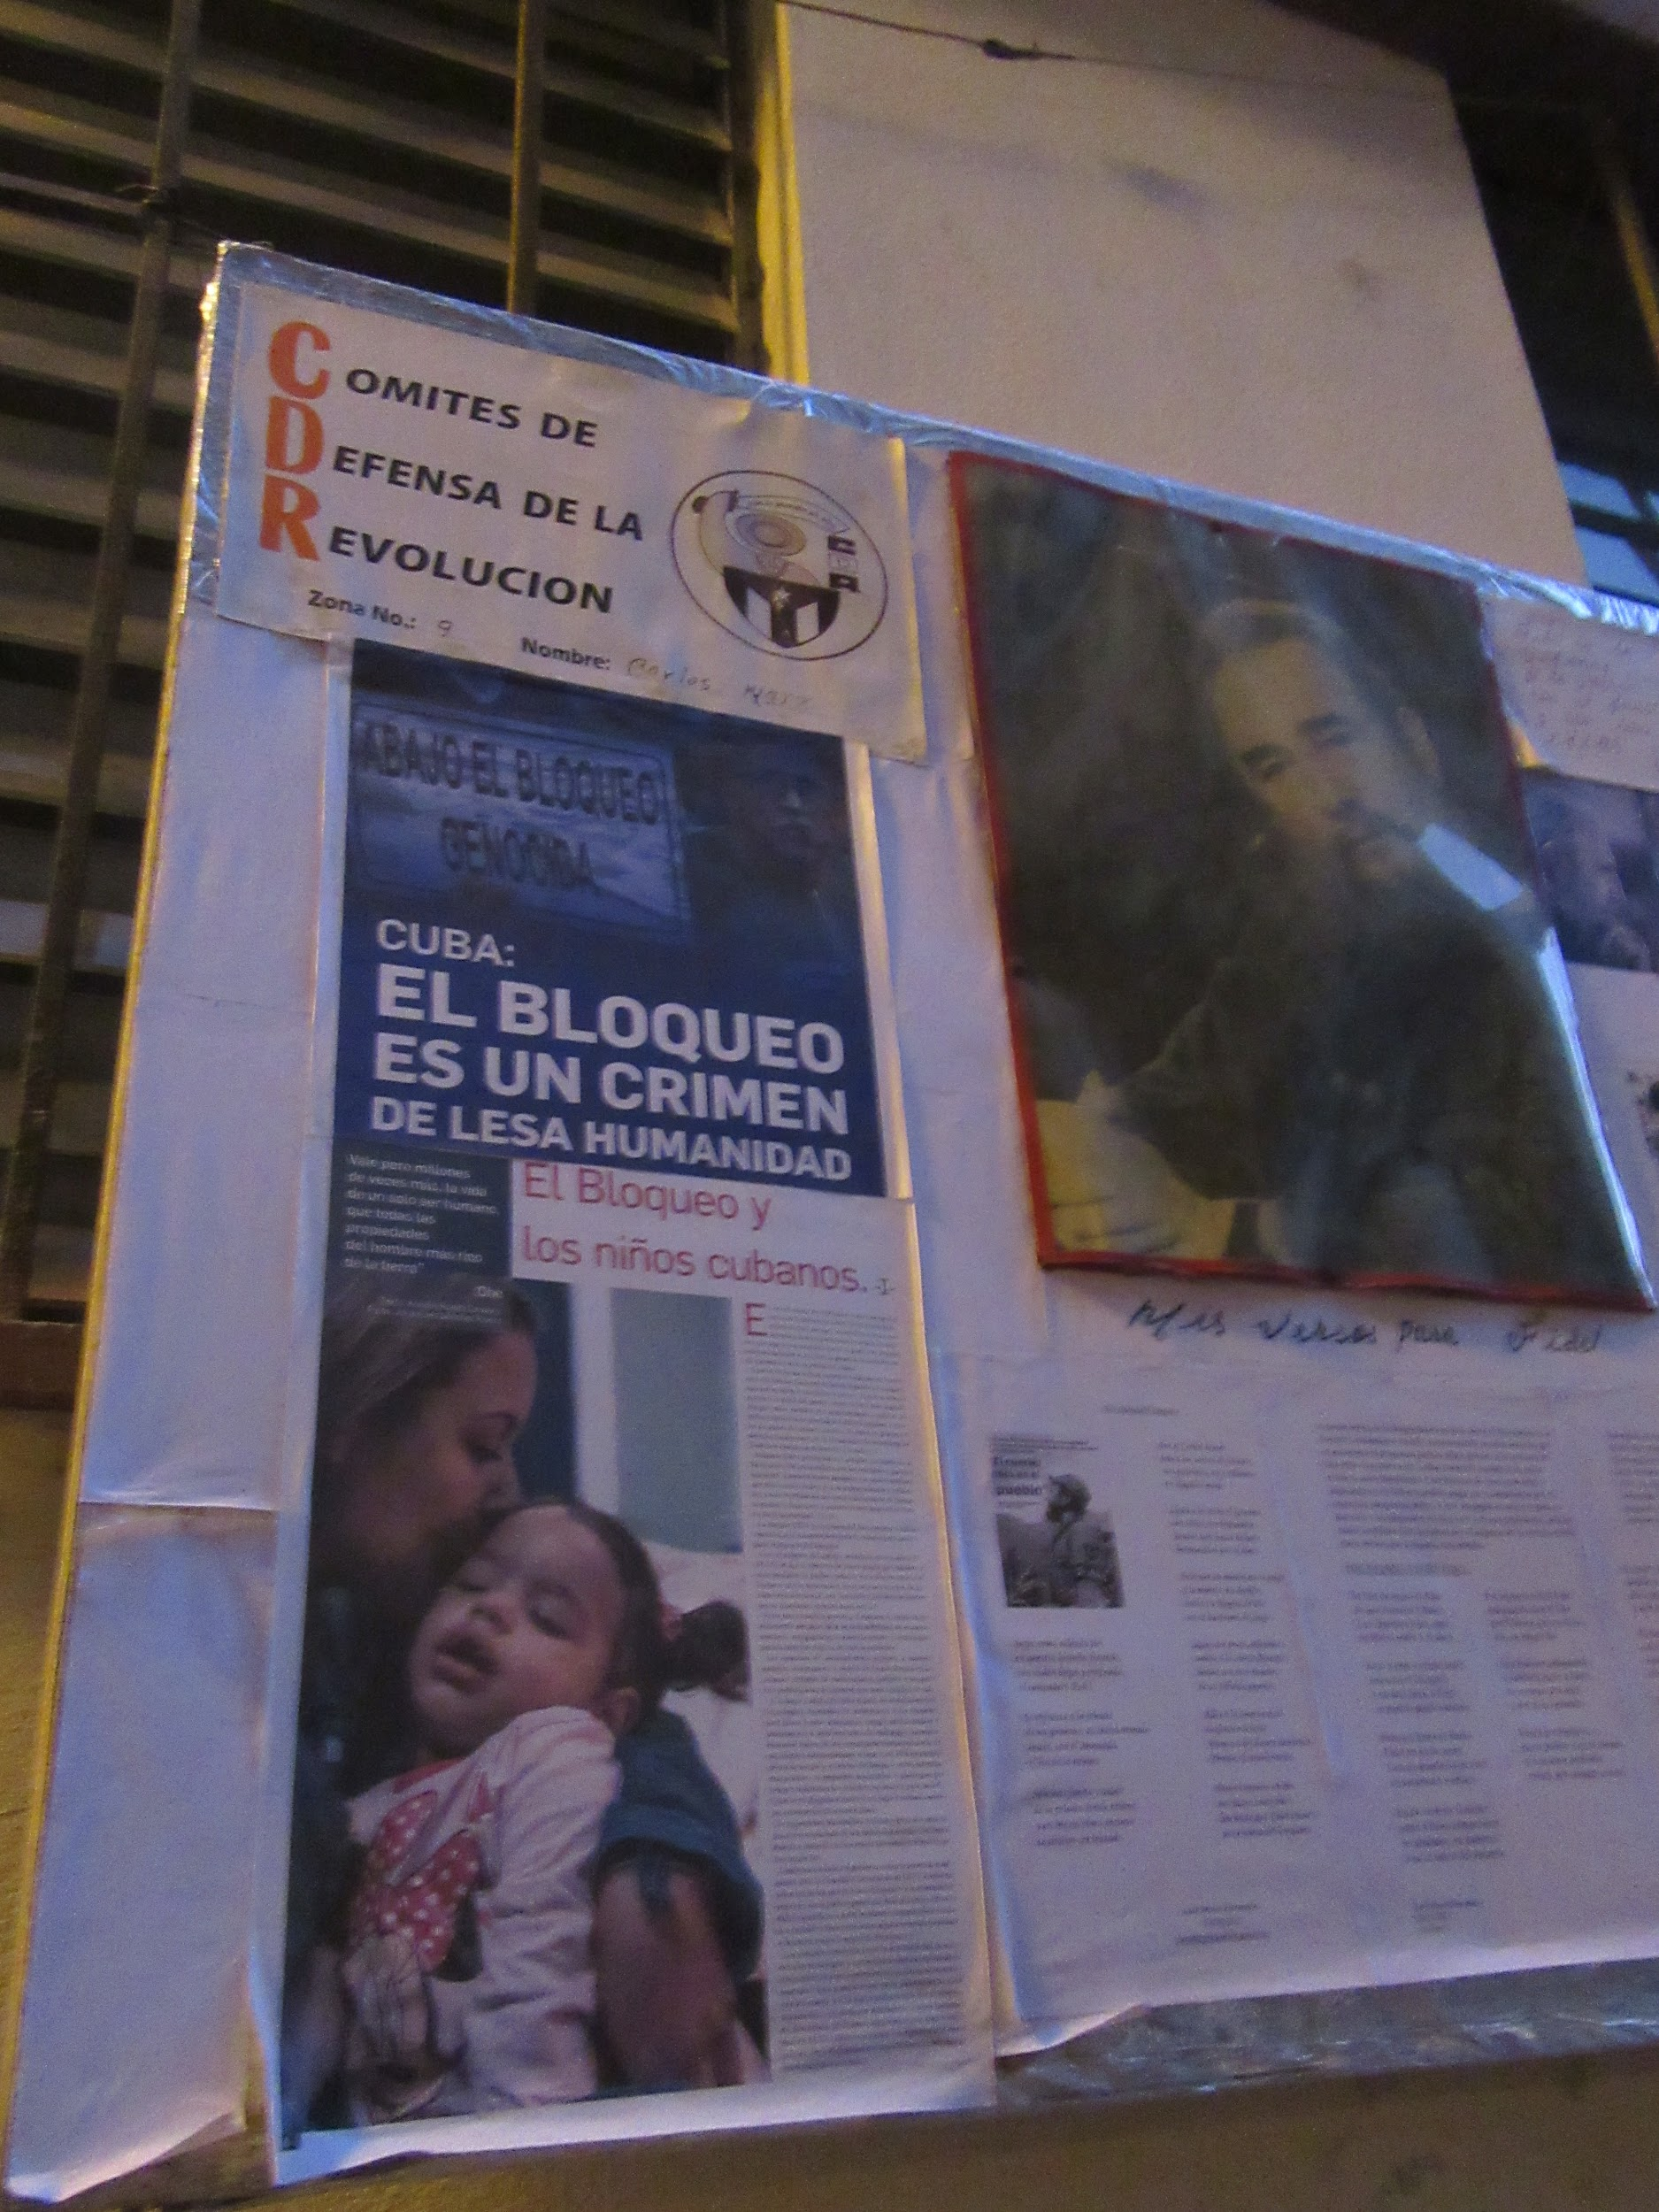 Posters criticizing the American embargo